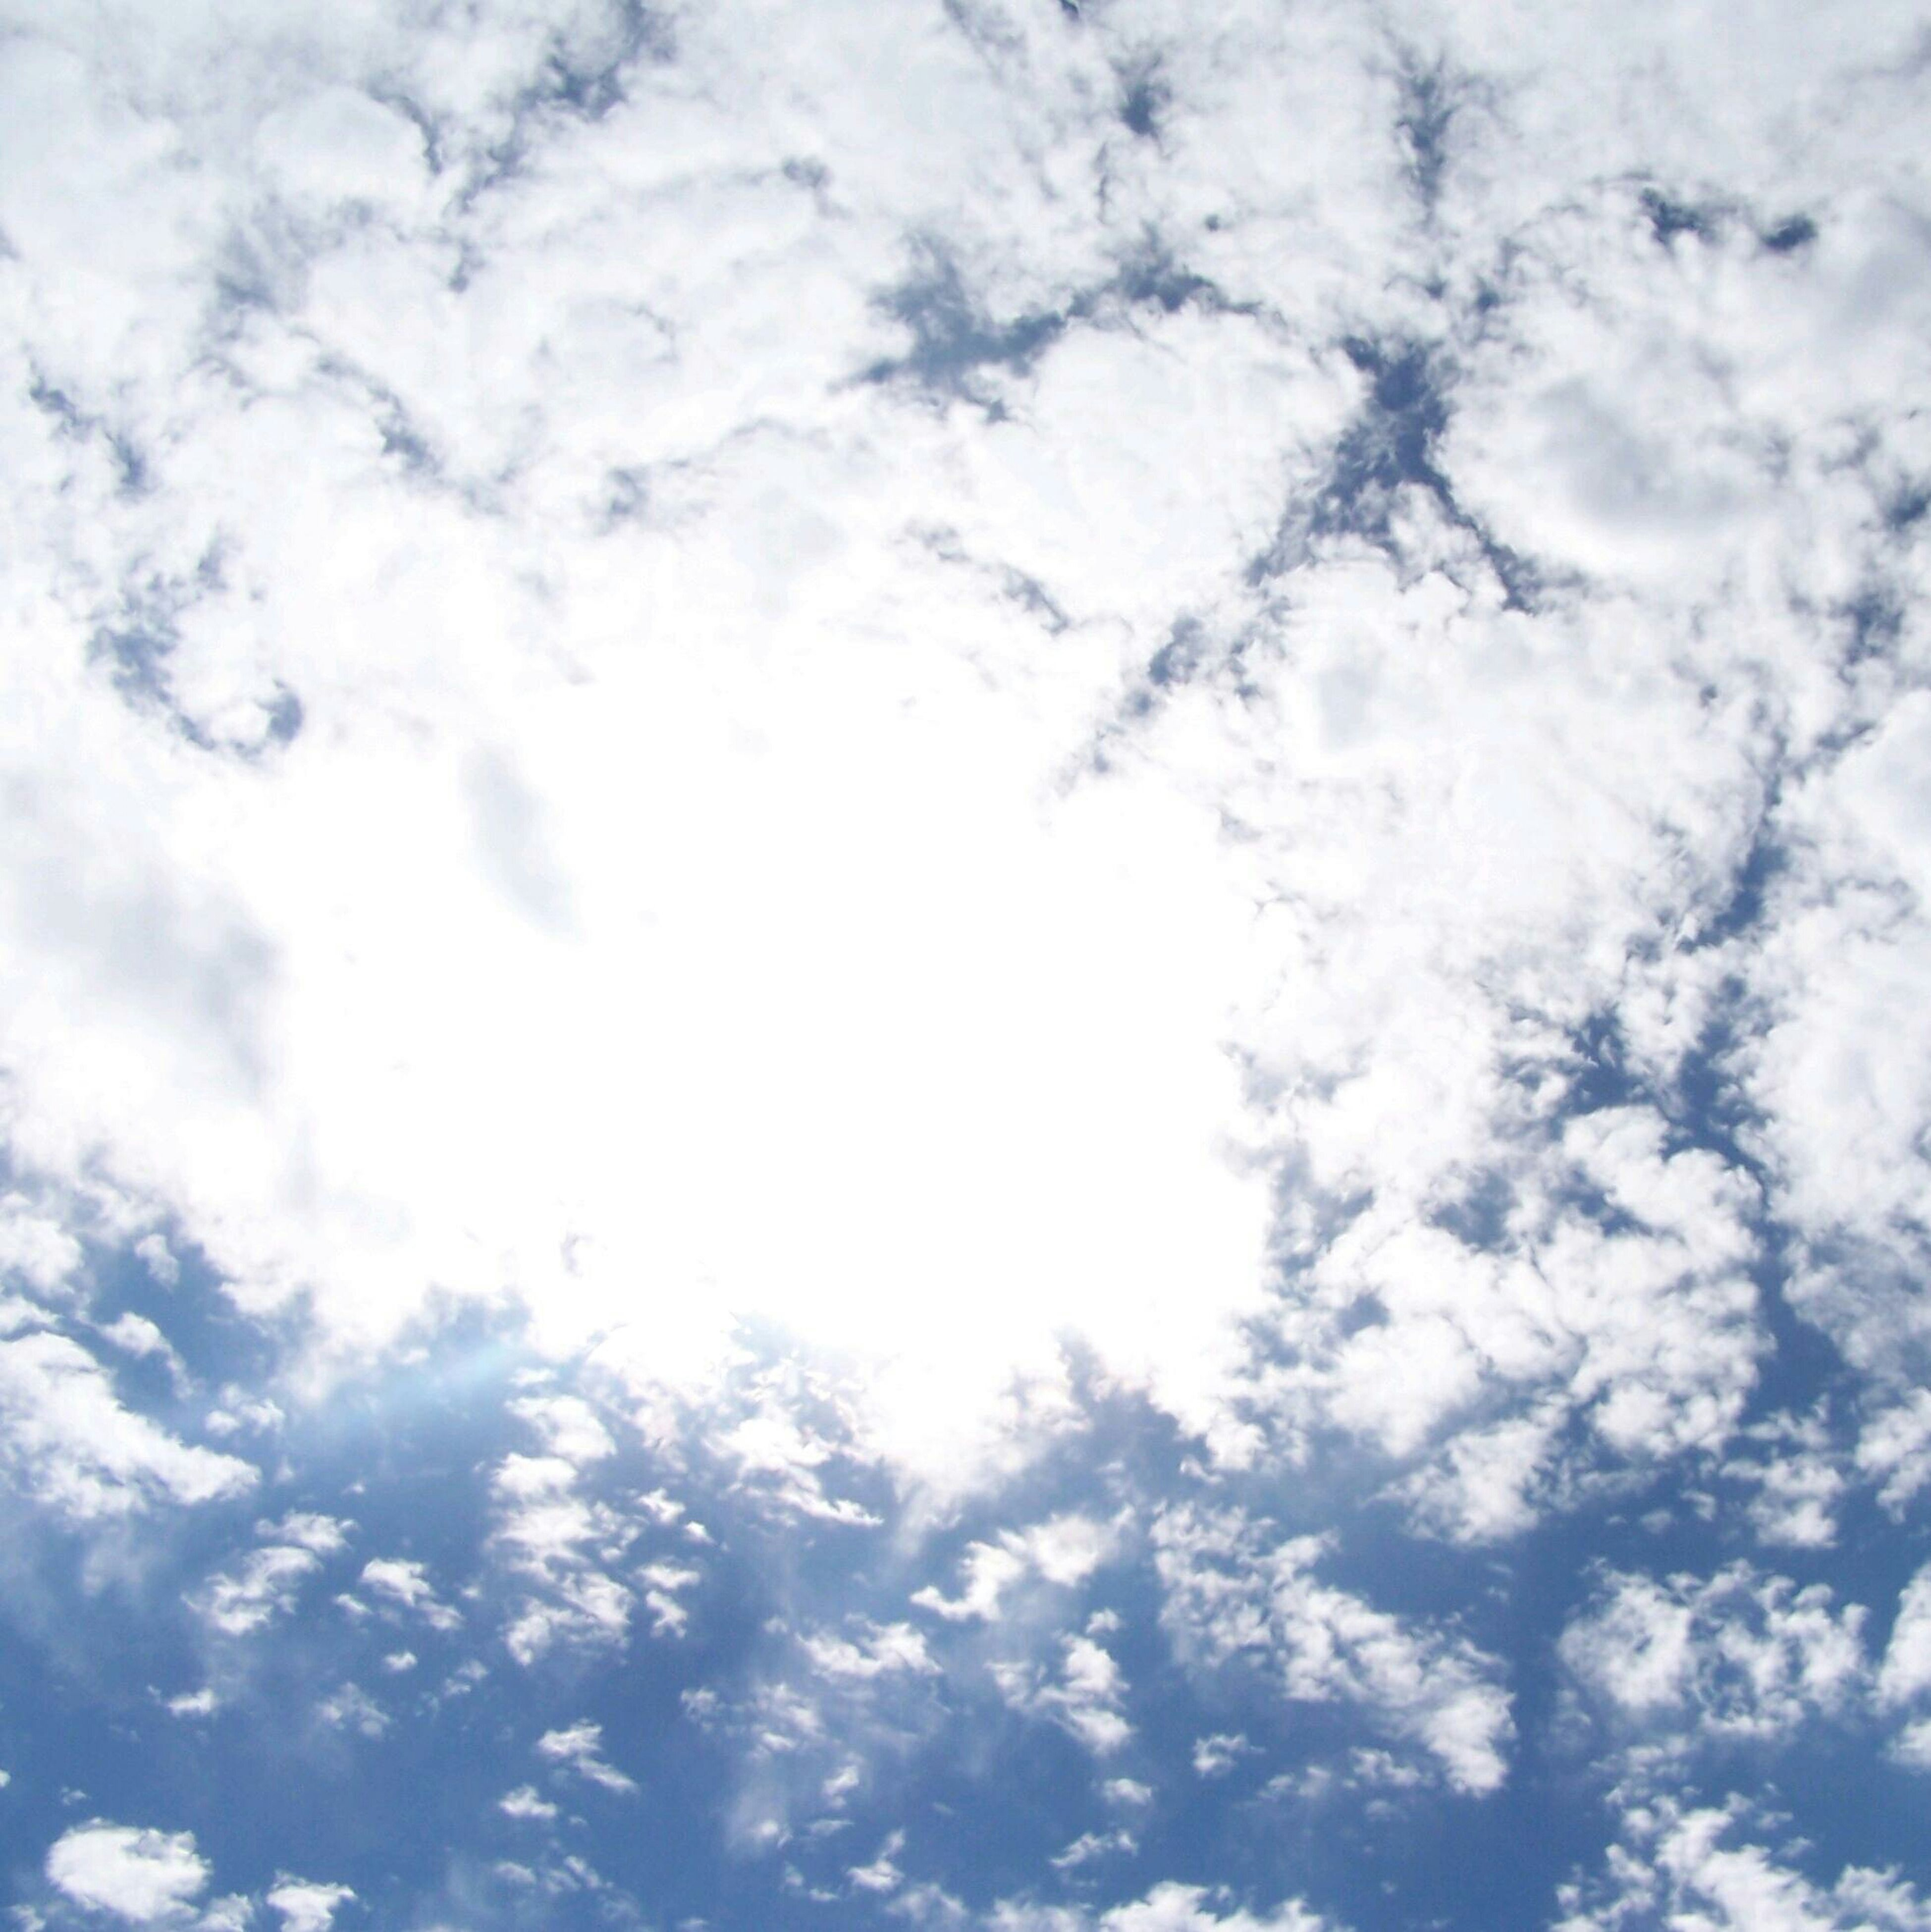 low angle view, sky, cloud - sky, sky only, beauty in nature, backgrounds, tranquility, full frame, nature, cloudy, scenics, tranquil scene, cloudscape, cloud, blue, white color, day, idyllic, outdoors, no people